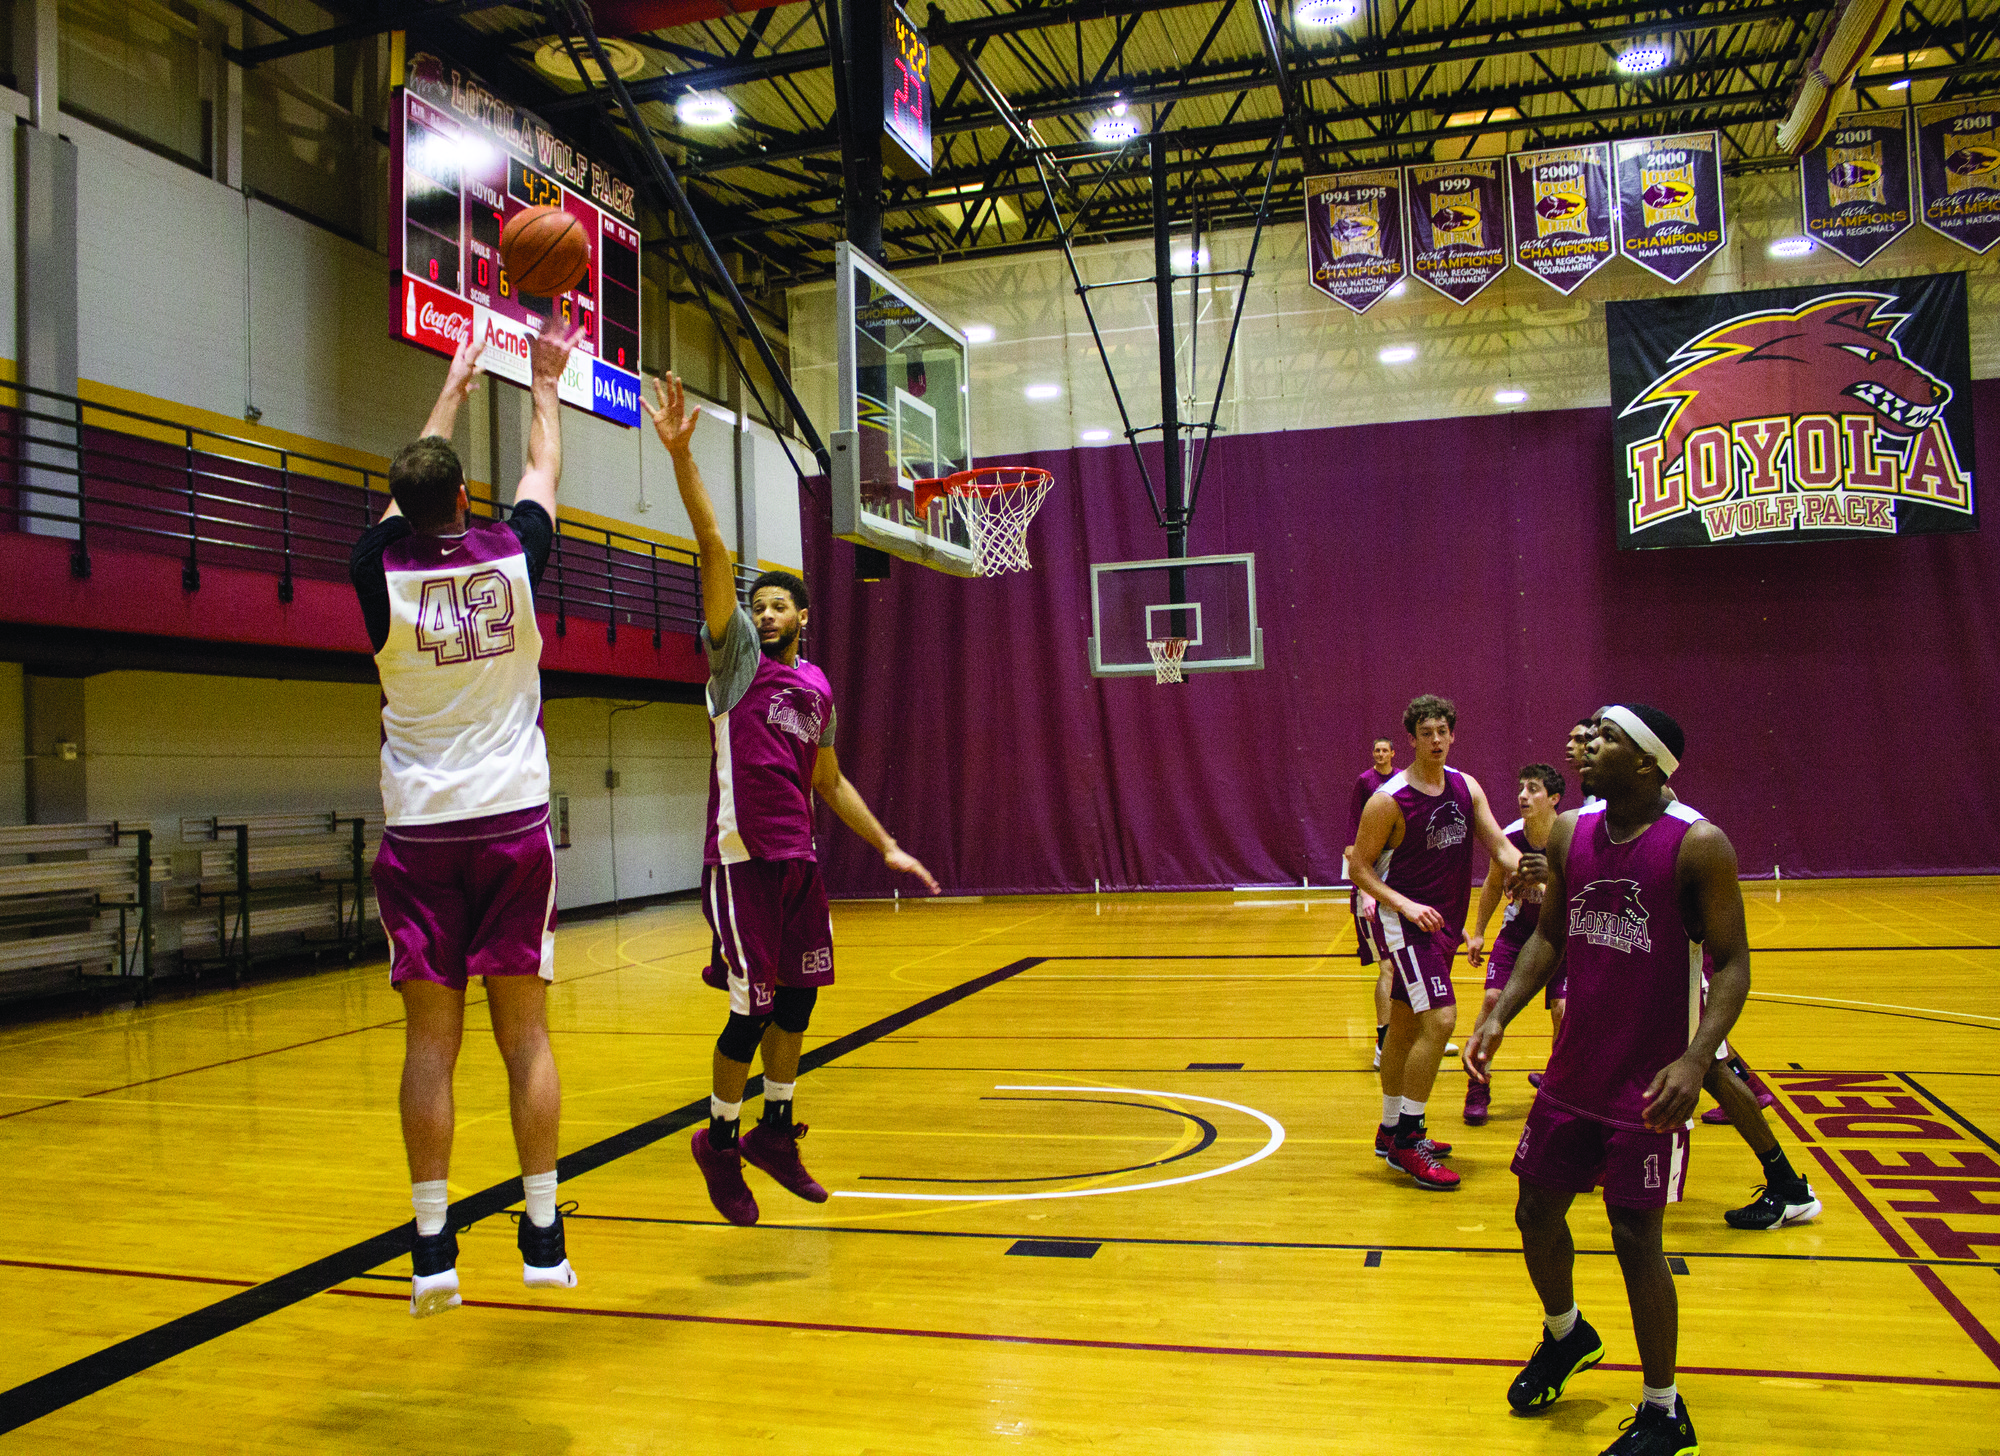 Wolf Pack Men's Basketball Team and coaches Stacy Hallowel and Ryan Brock hold practice at the First NBC Court on Loyola University New Orleans, Louisiana, Jan. 24, 2017. Stacy Hollowel, head coach, said team members have been exerting extraordinary effort during practice. Photo credit: Osama Ayyad